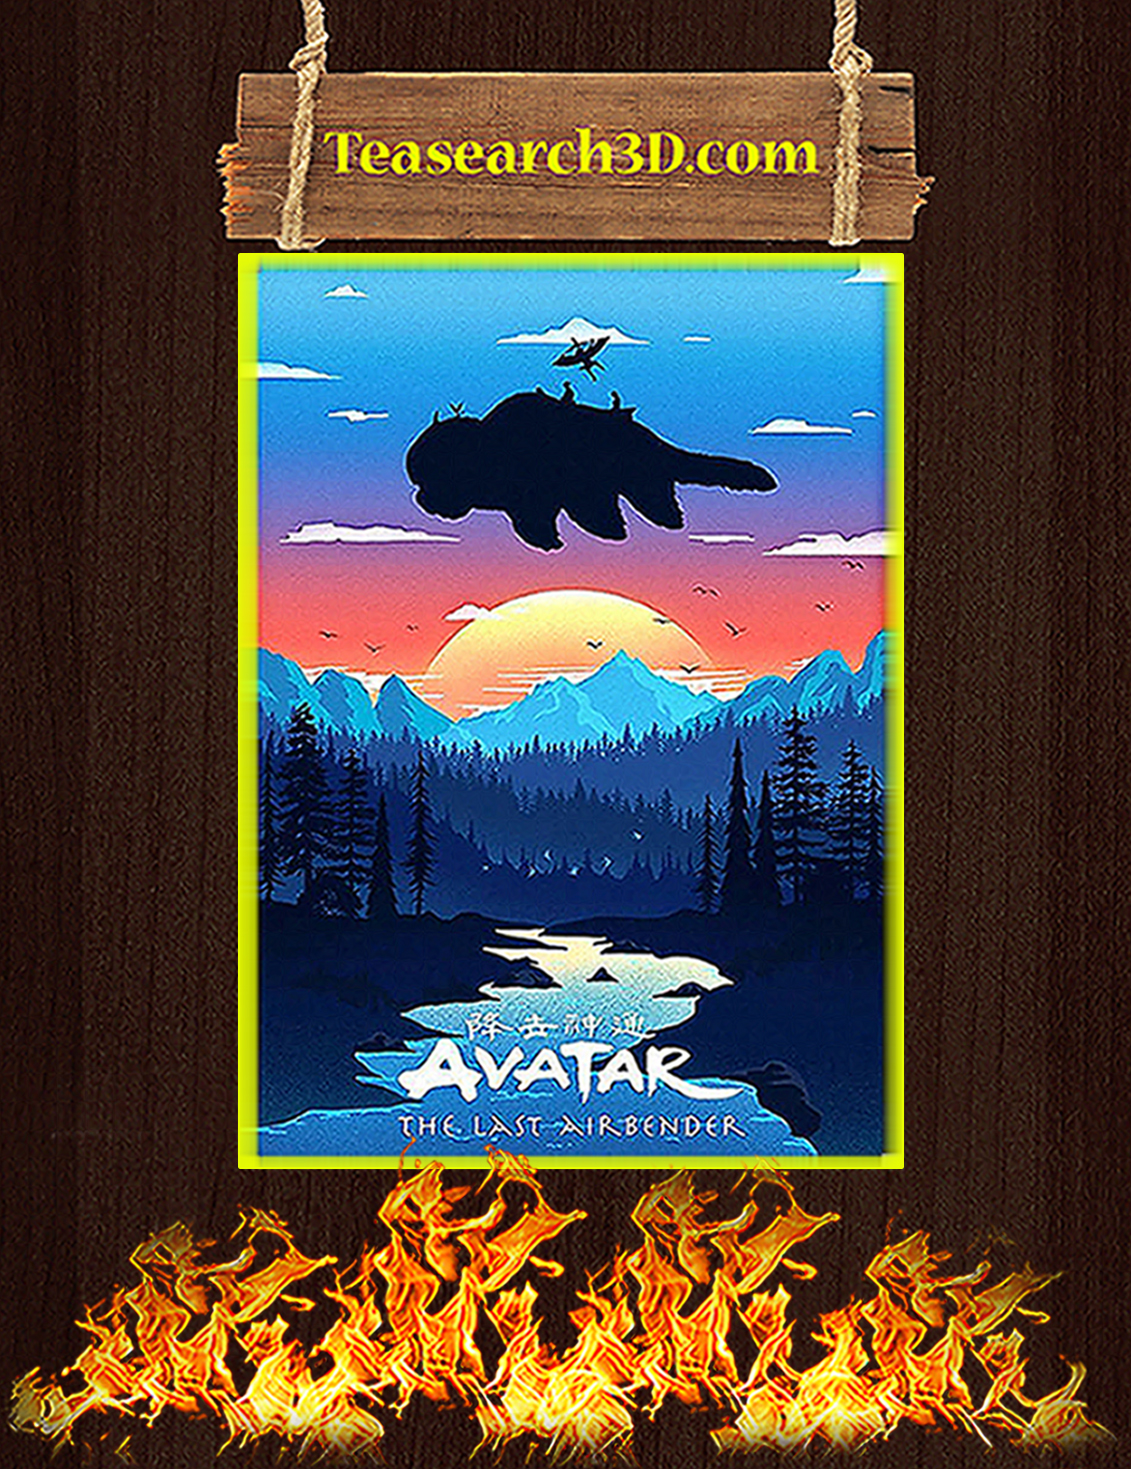 Avatar the last airbender poster A3